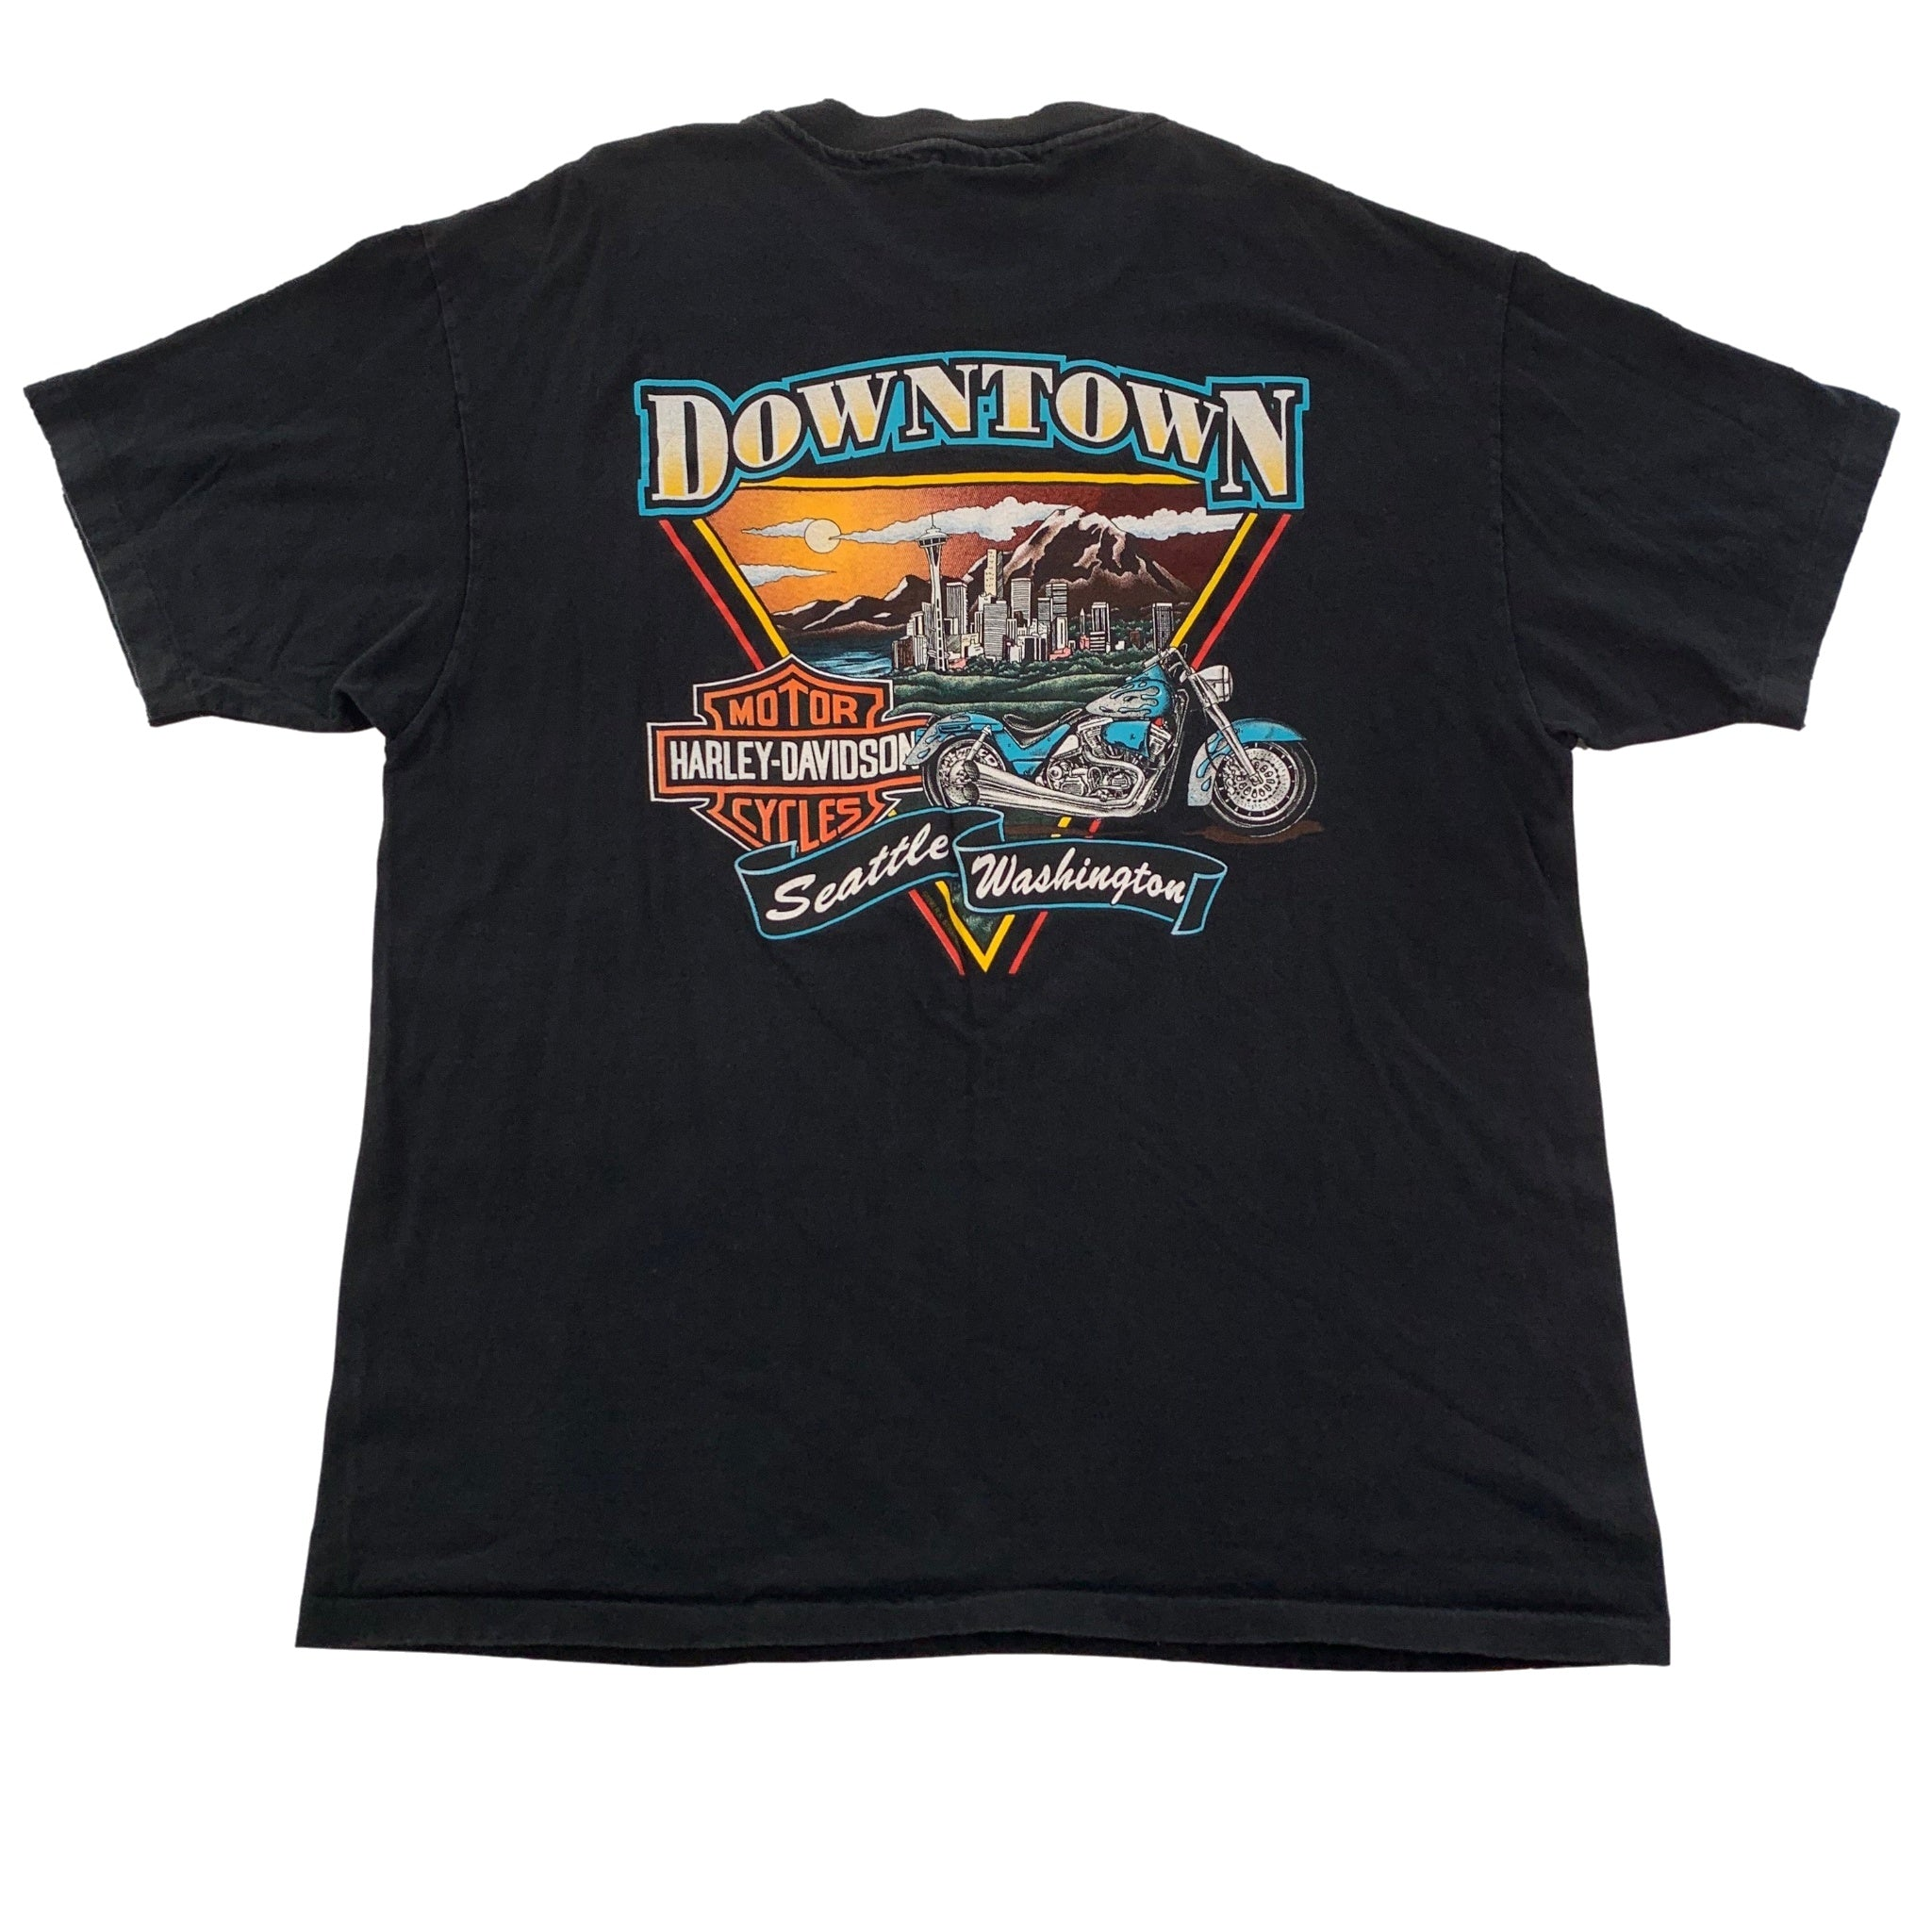 "Vintage Harley-Davidson "" Downtown Seattle"" T-Shirt"